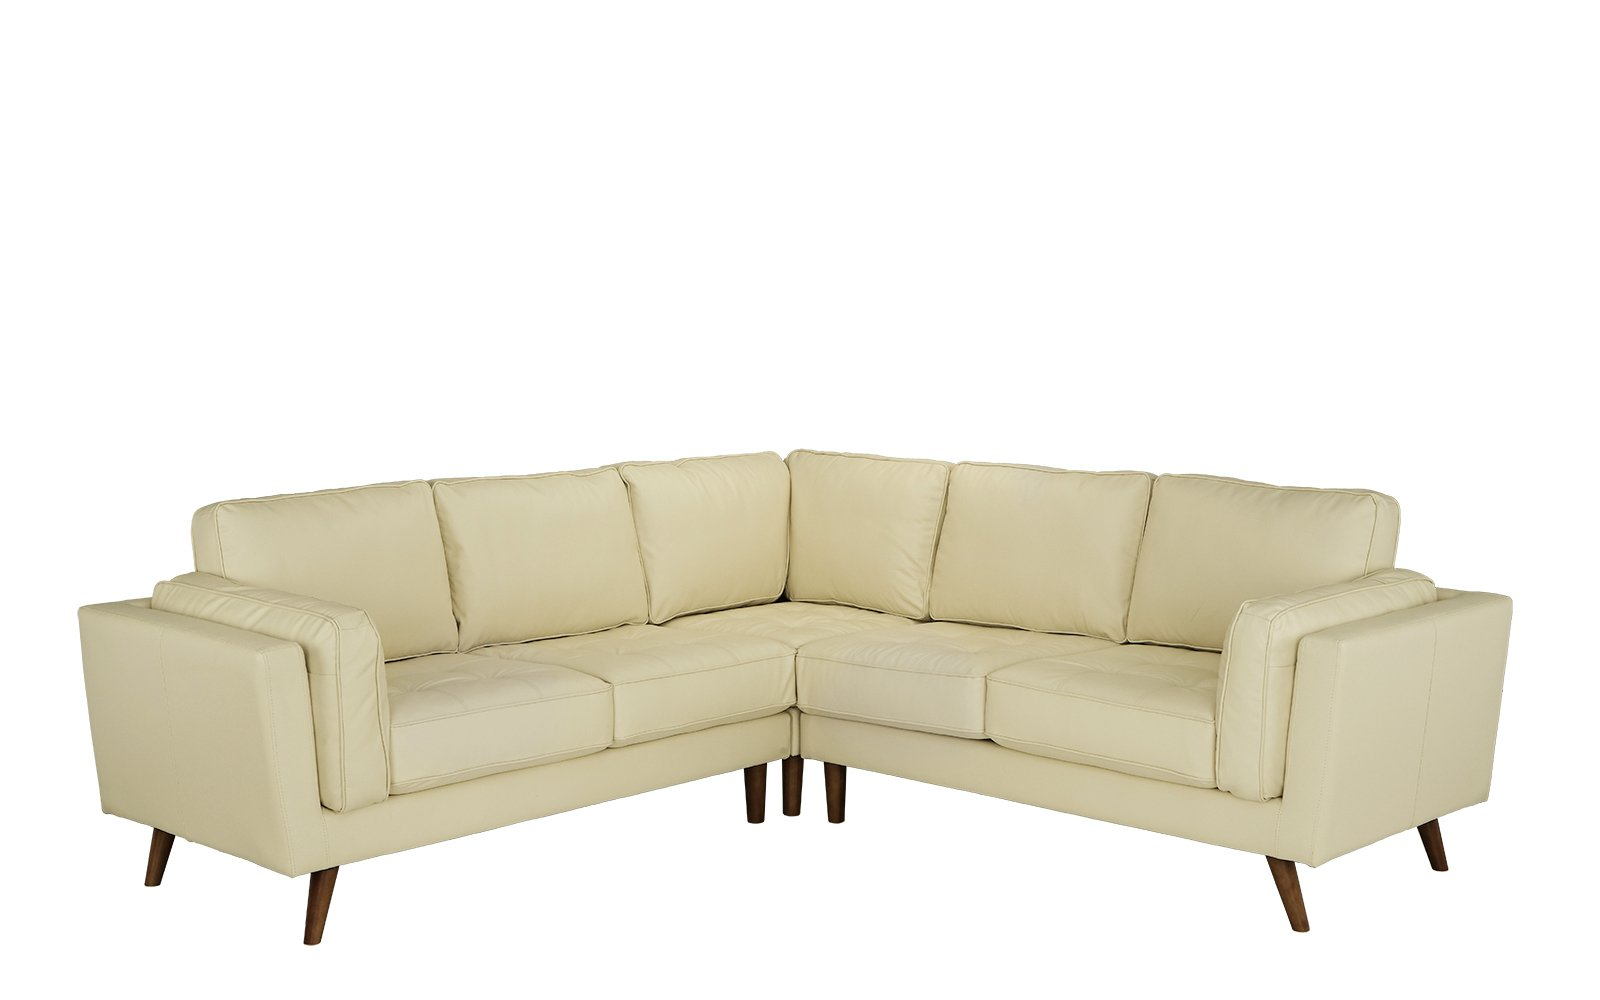 Details About Mid Century Modern Leather Match Sectional Sofa For Living Room Beige